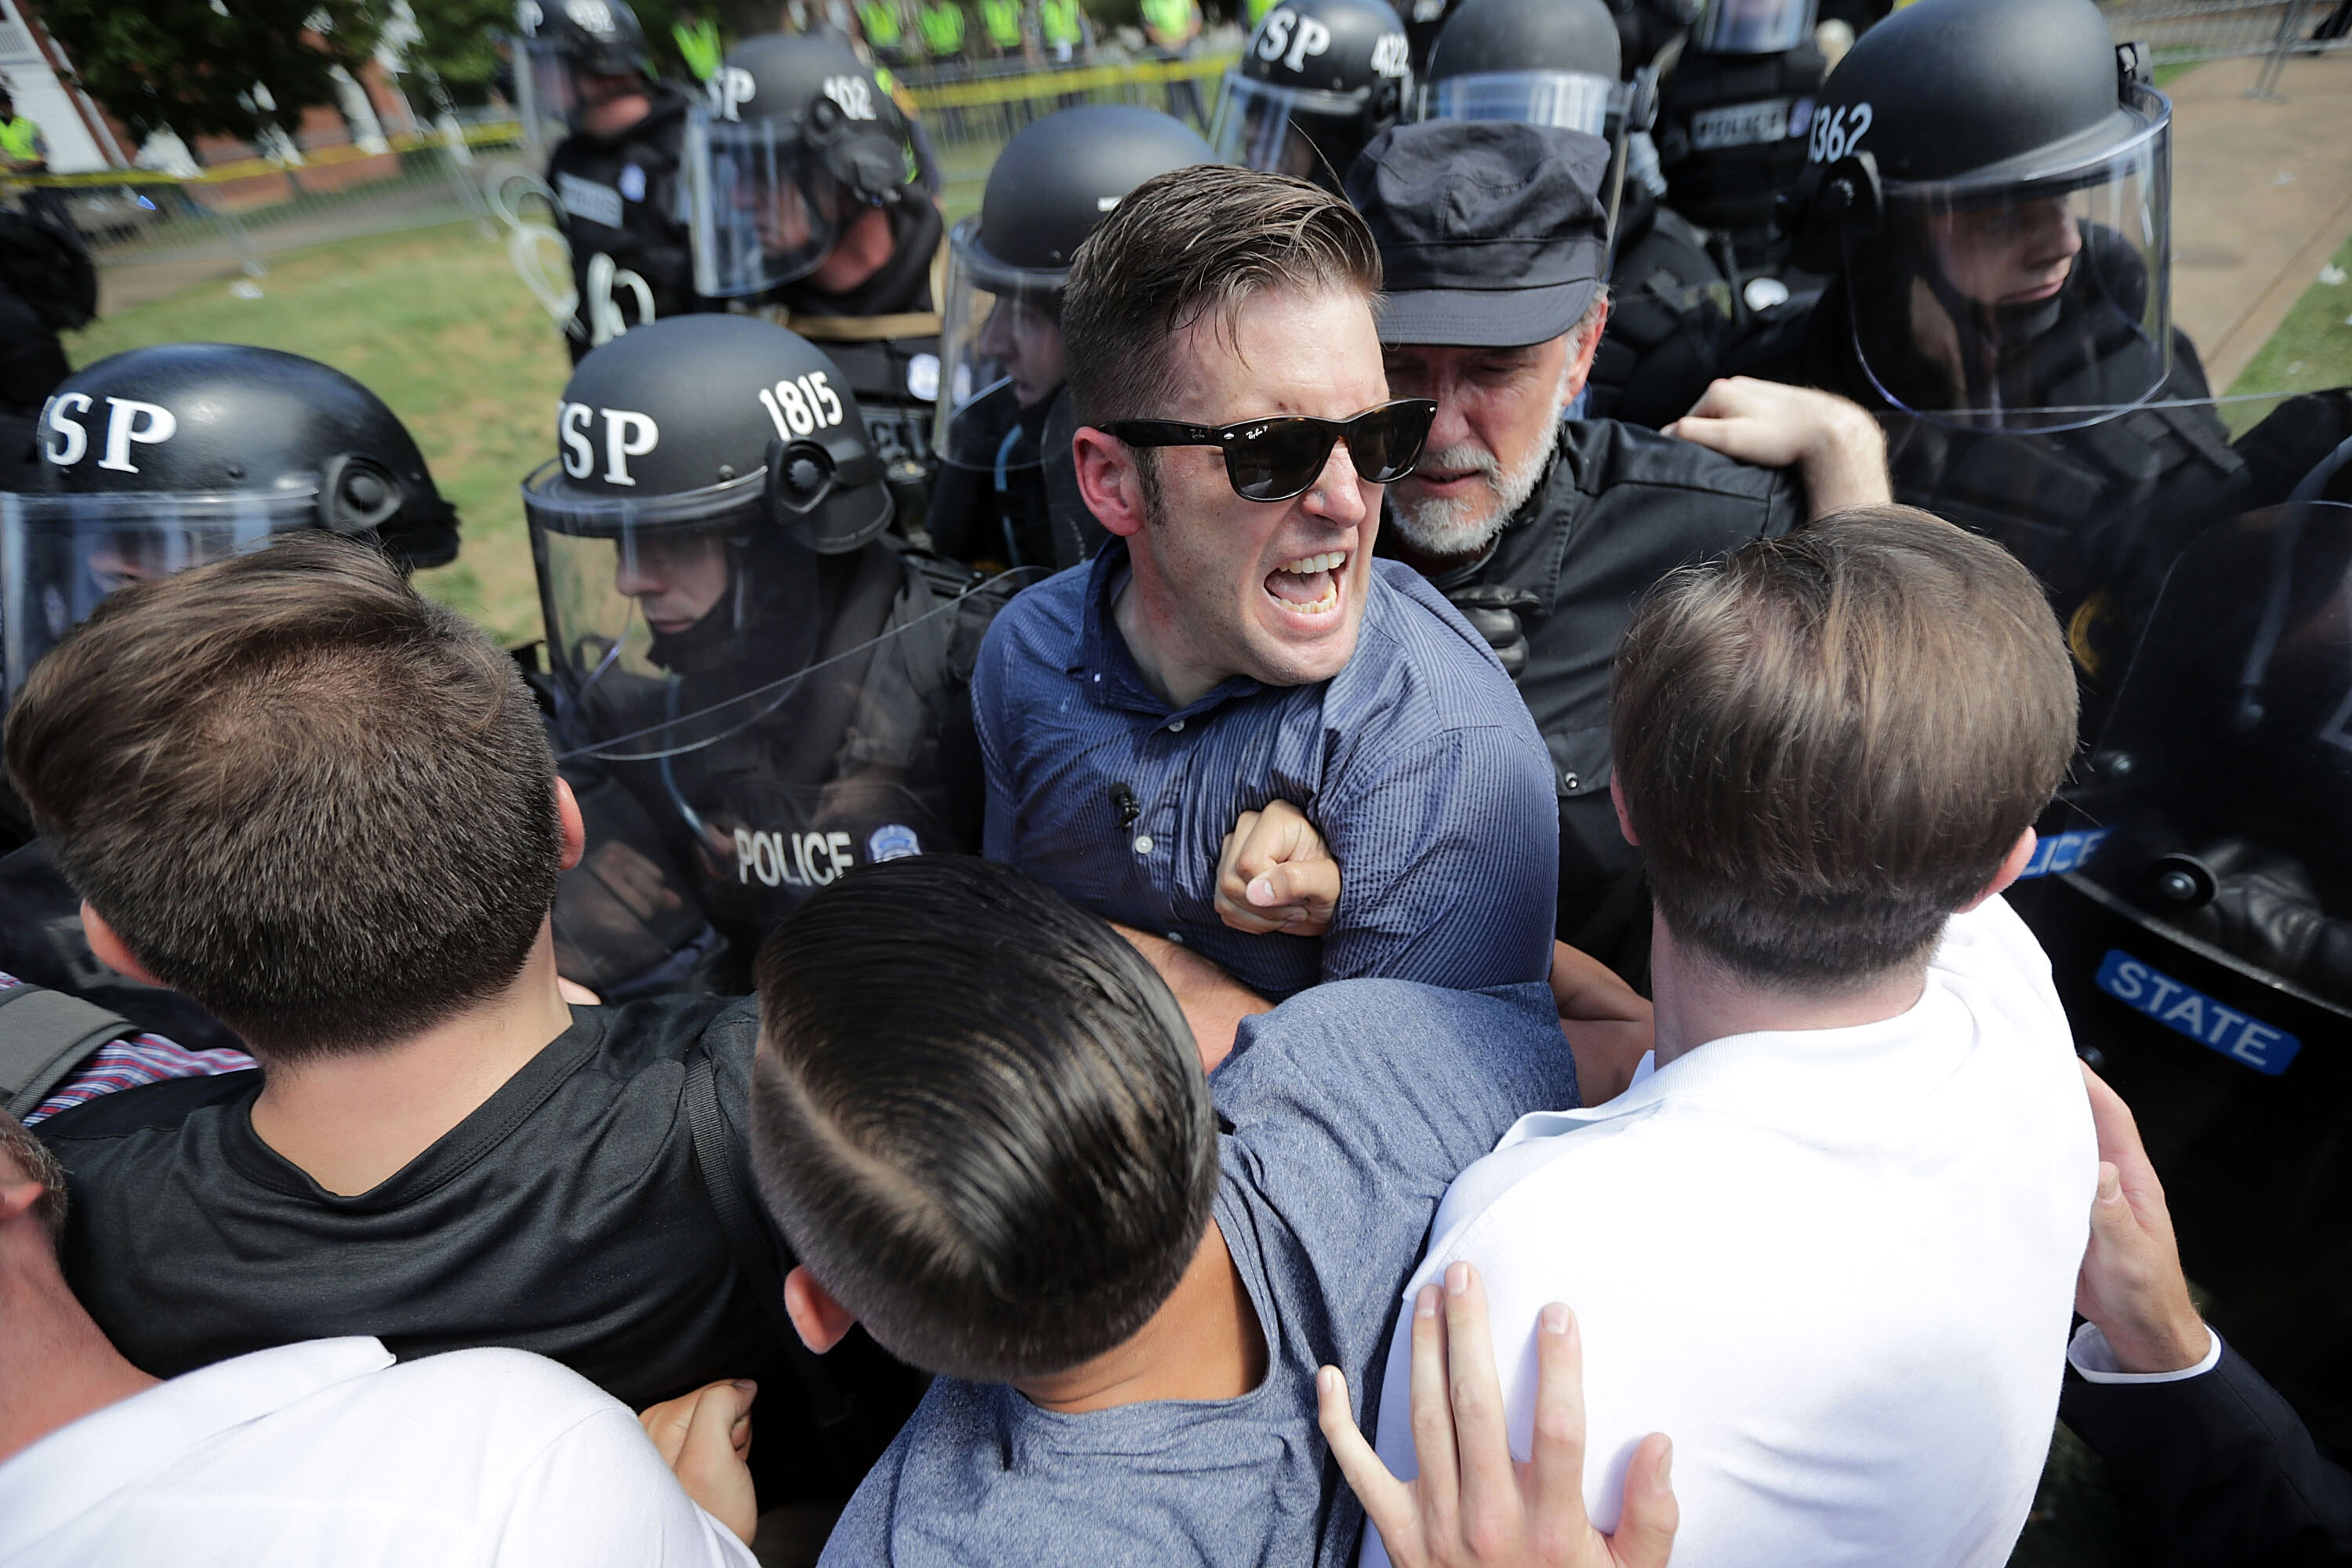 Jury to hear opening statements in trial over whether Charlottesville Unite the Right rally was intended to spur violence